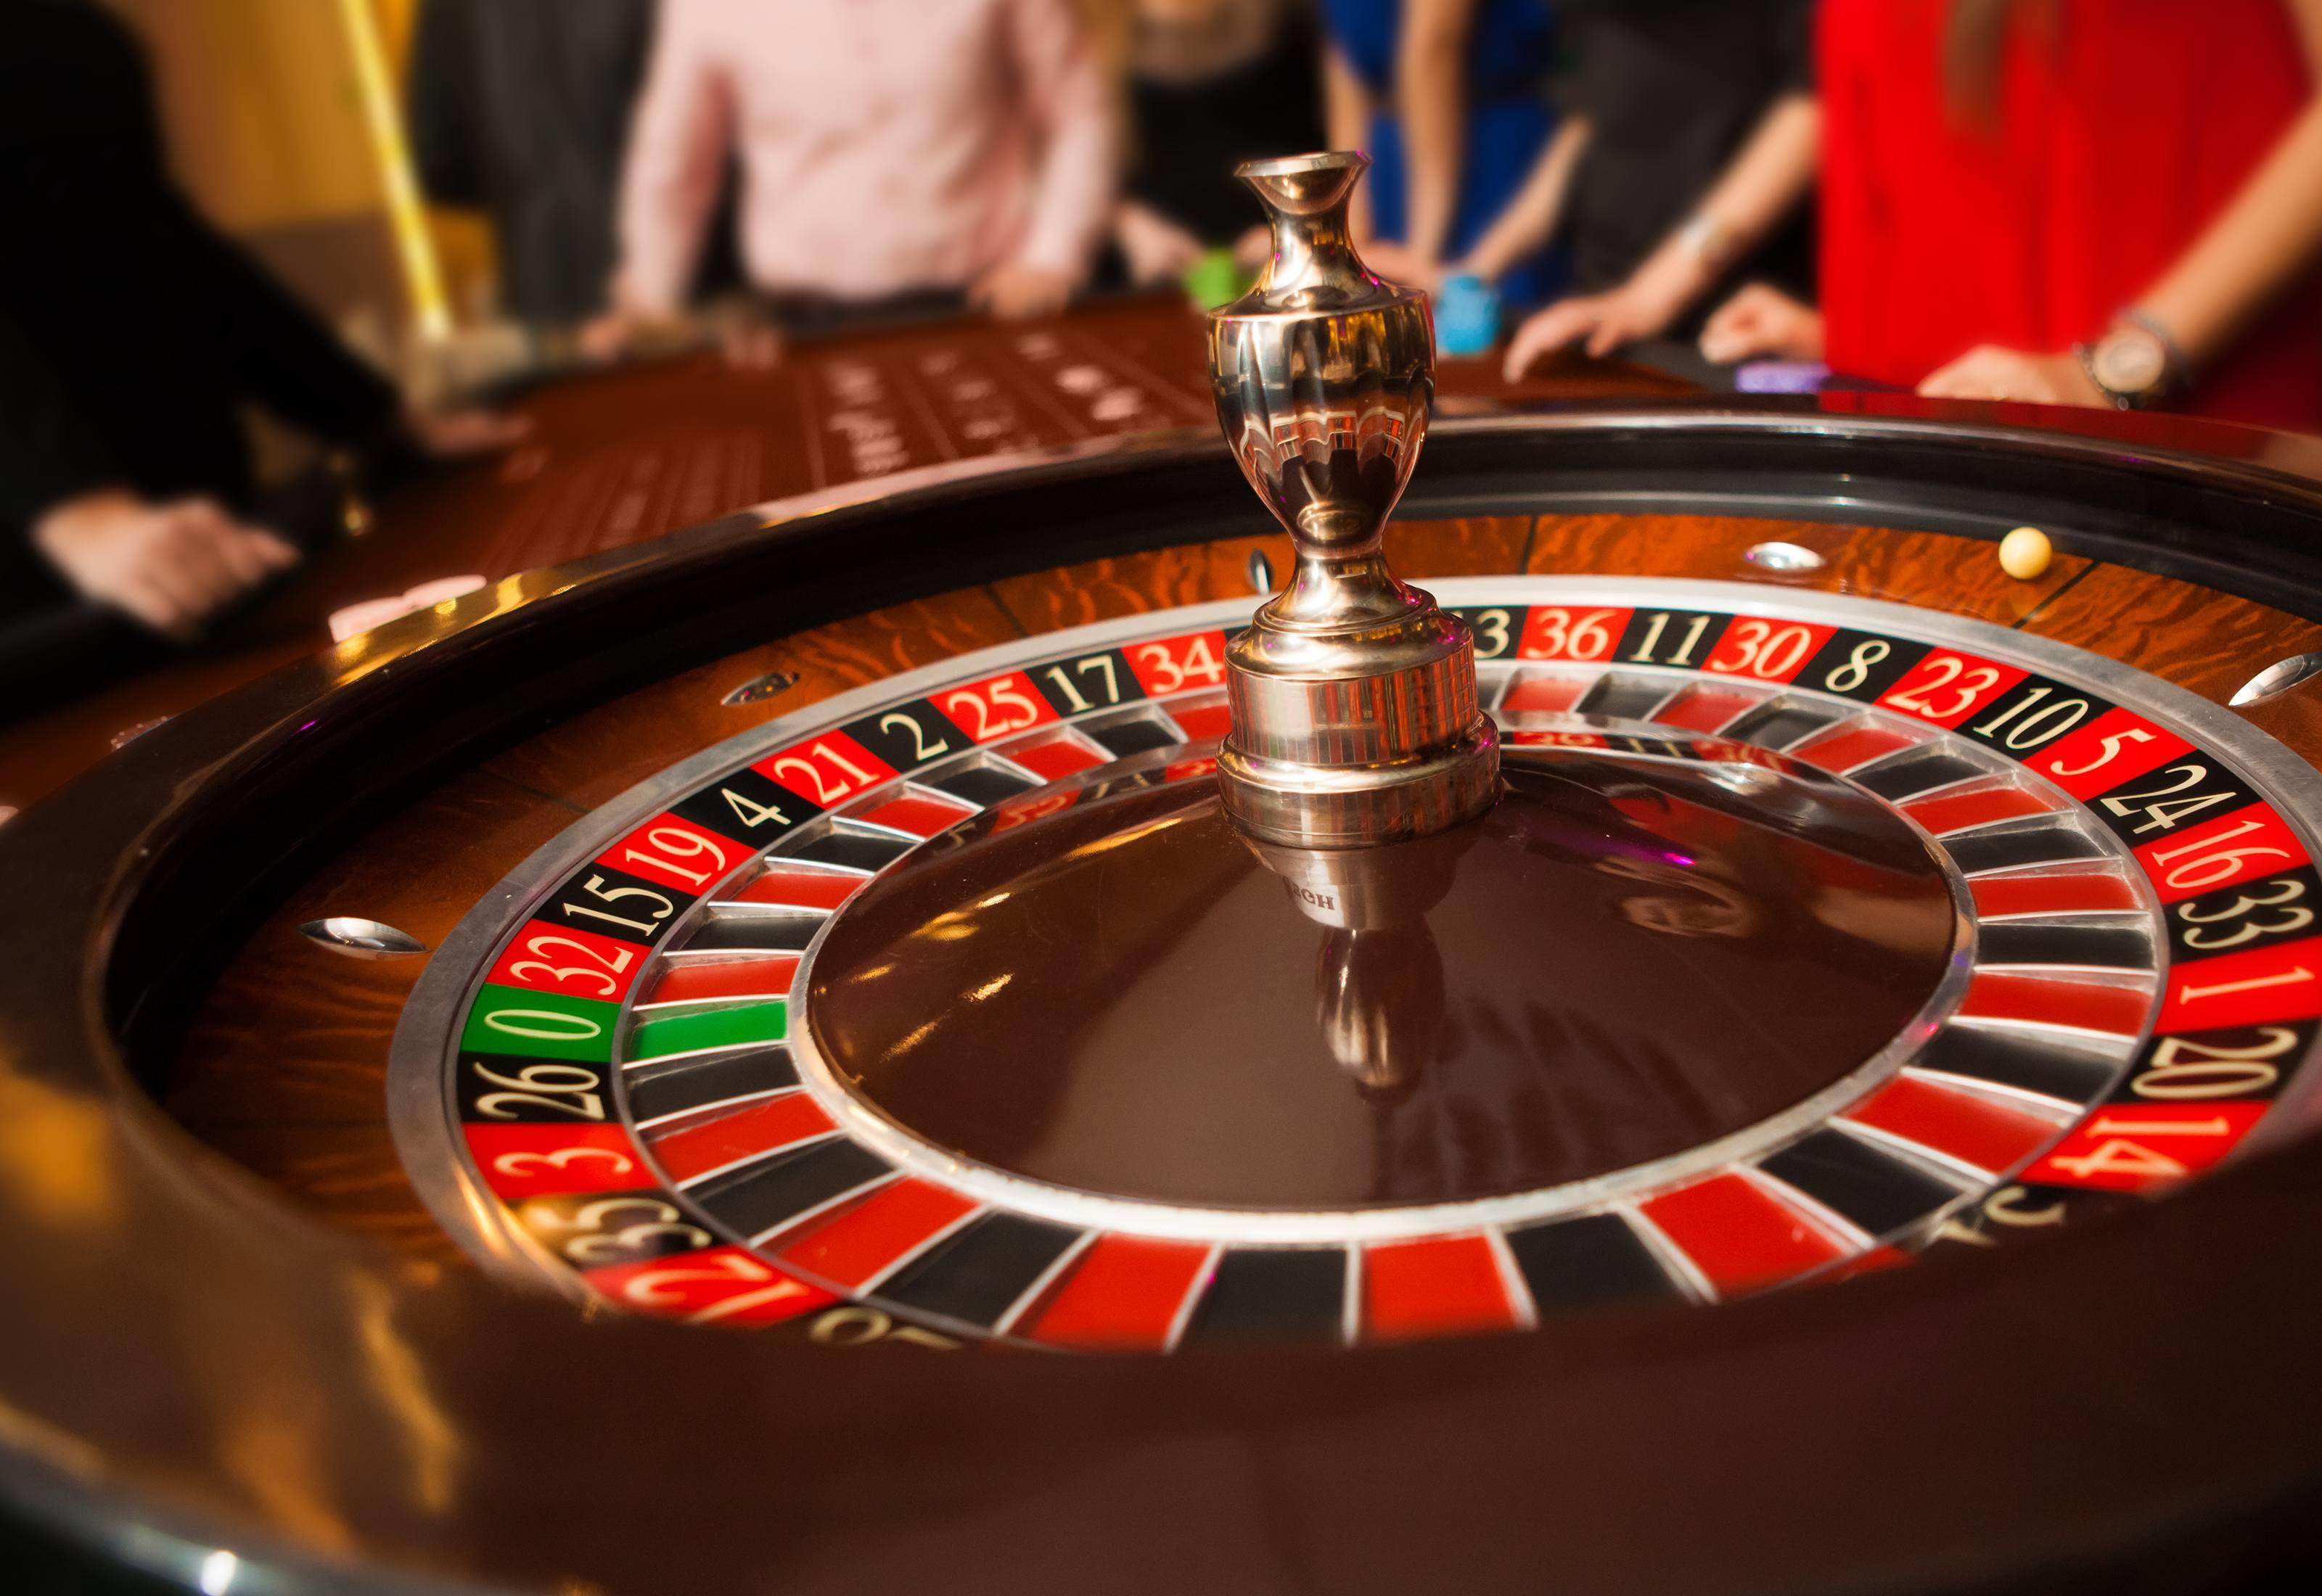 The House Edge in Roulette